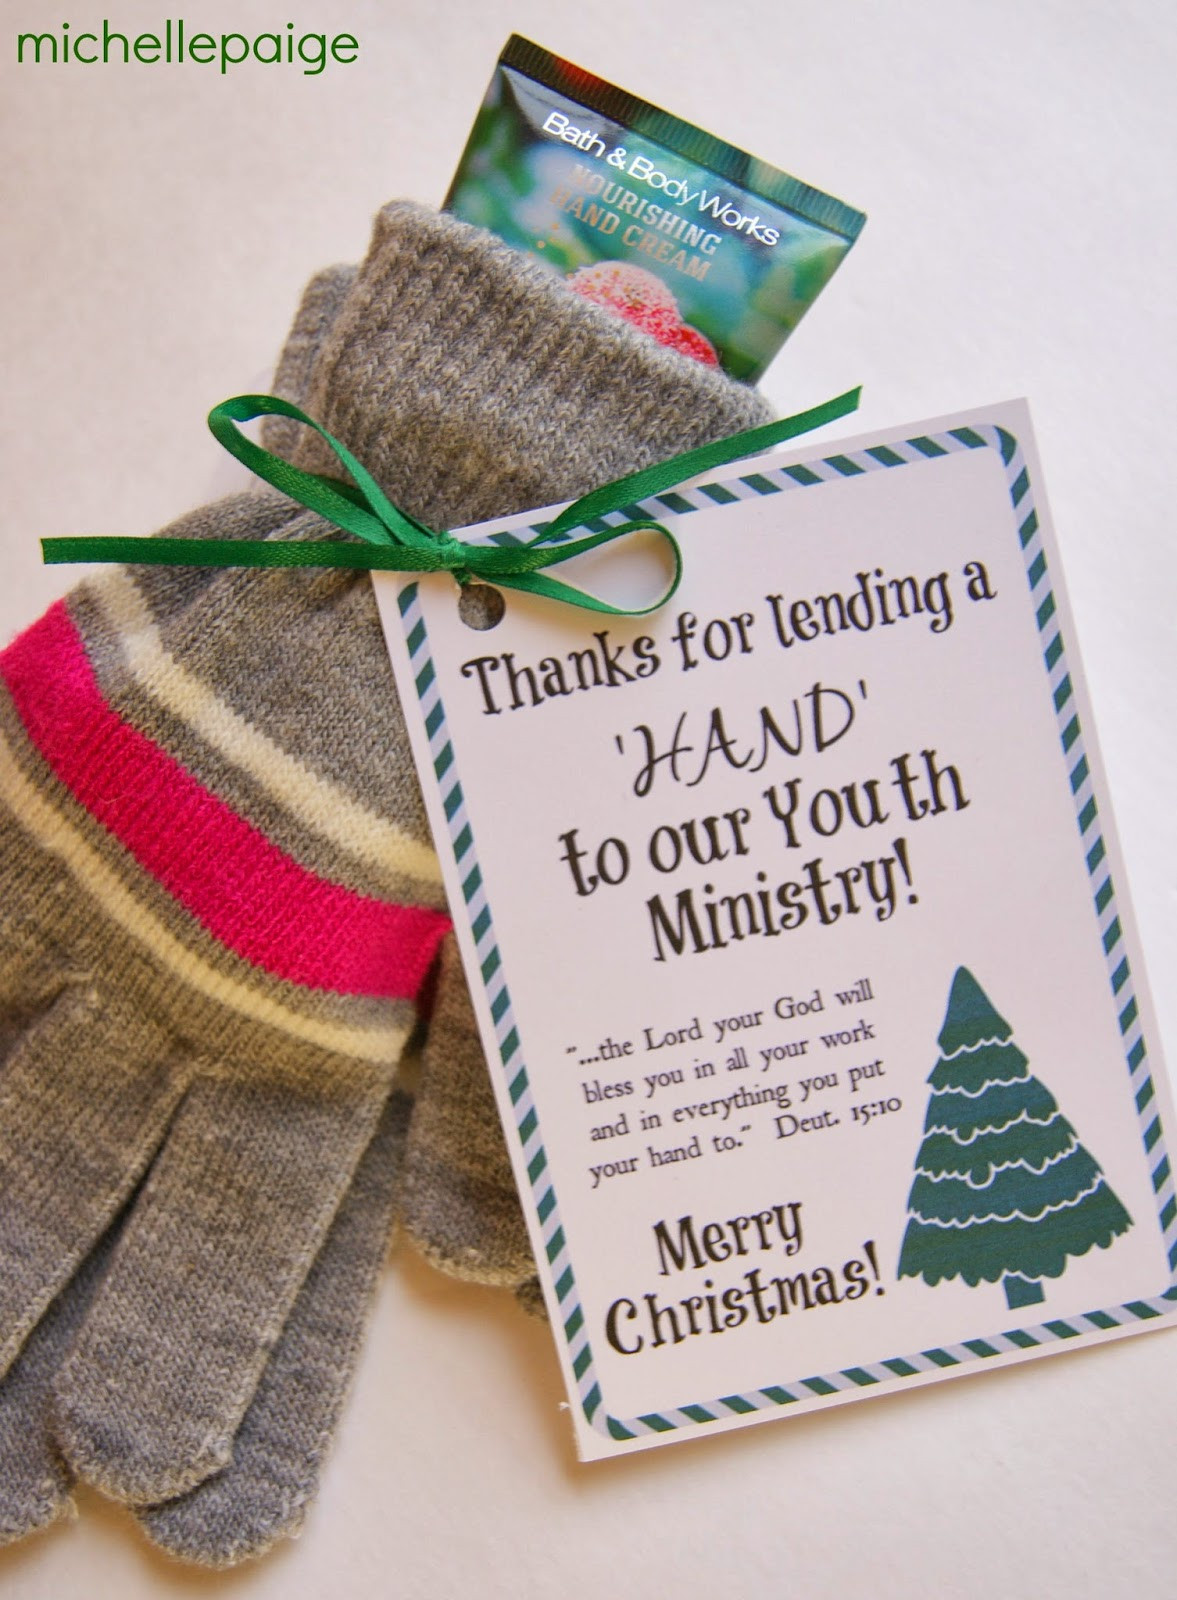 Gift Ideas Thank You  michelle paige blogs Youth Ministry and Children s